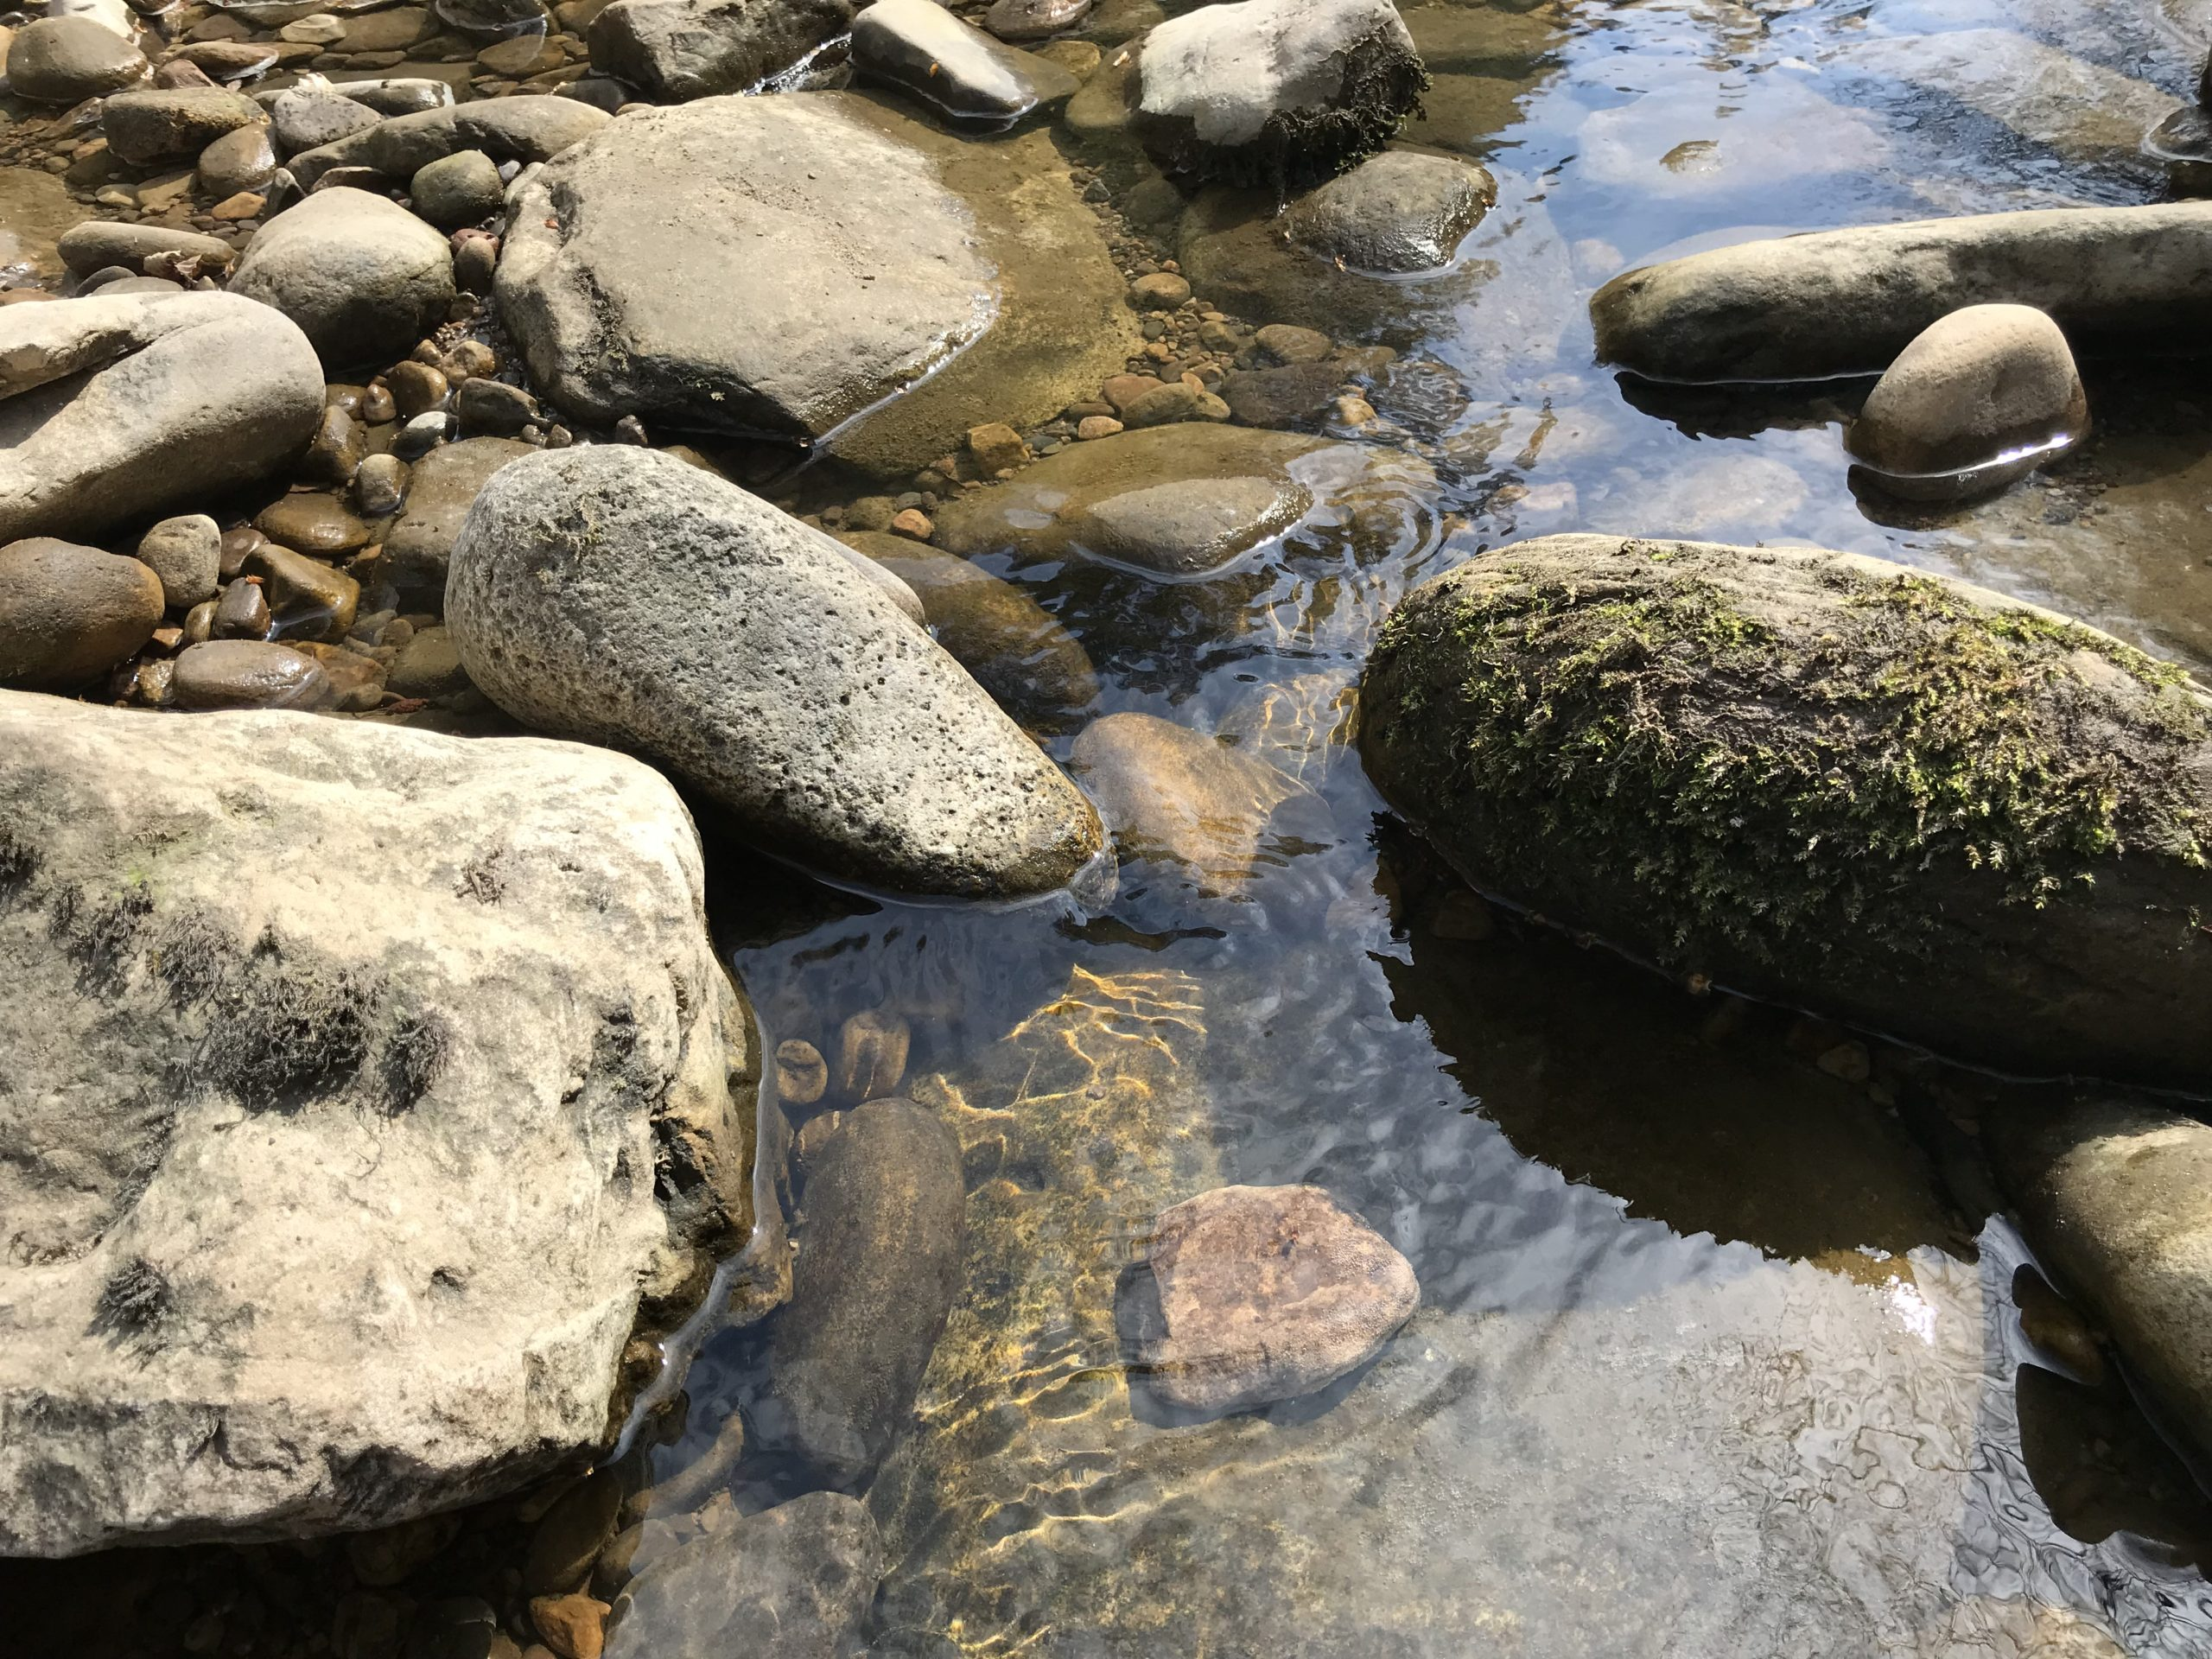 Pebbles and rocks in water